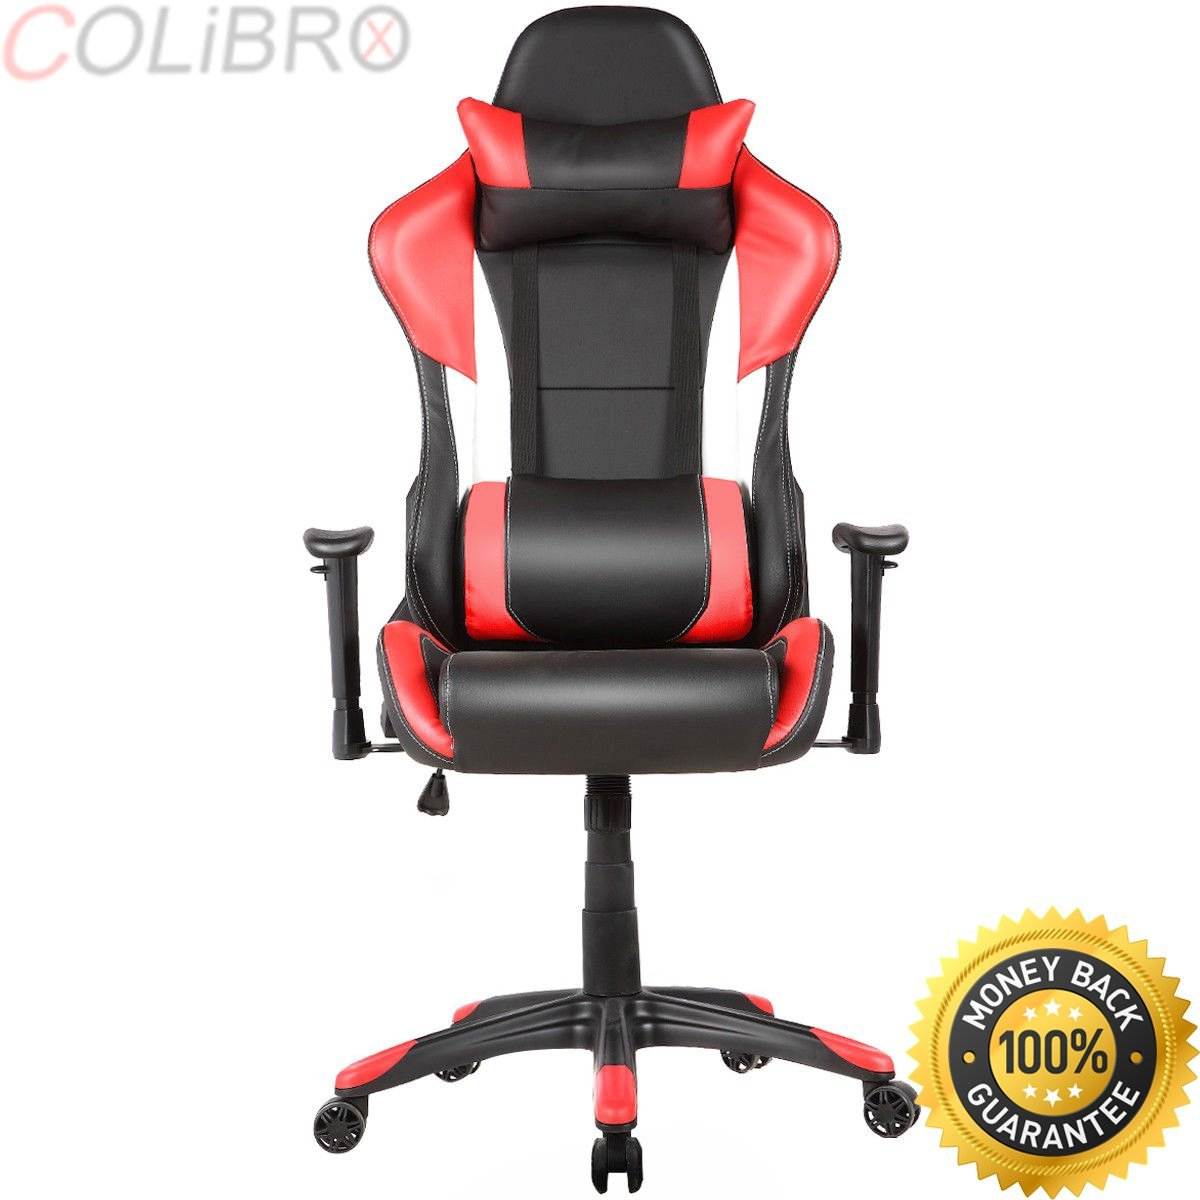 COLIBROX--Ergonomic High Back Racing Style Gaming Chair Recliner Executive Office Computer. gaming chair with footrest. executive racing style high back reclining chair gaming chair office computer.